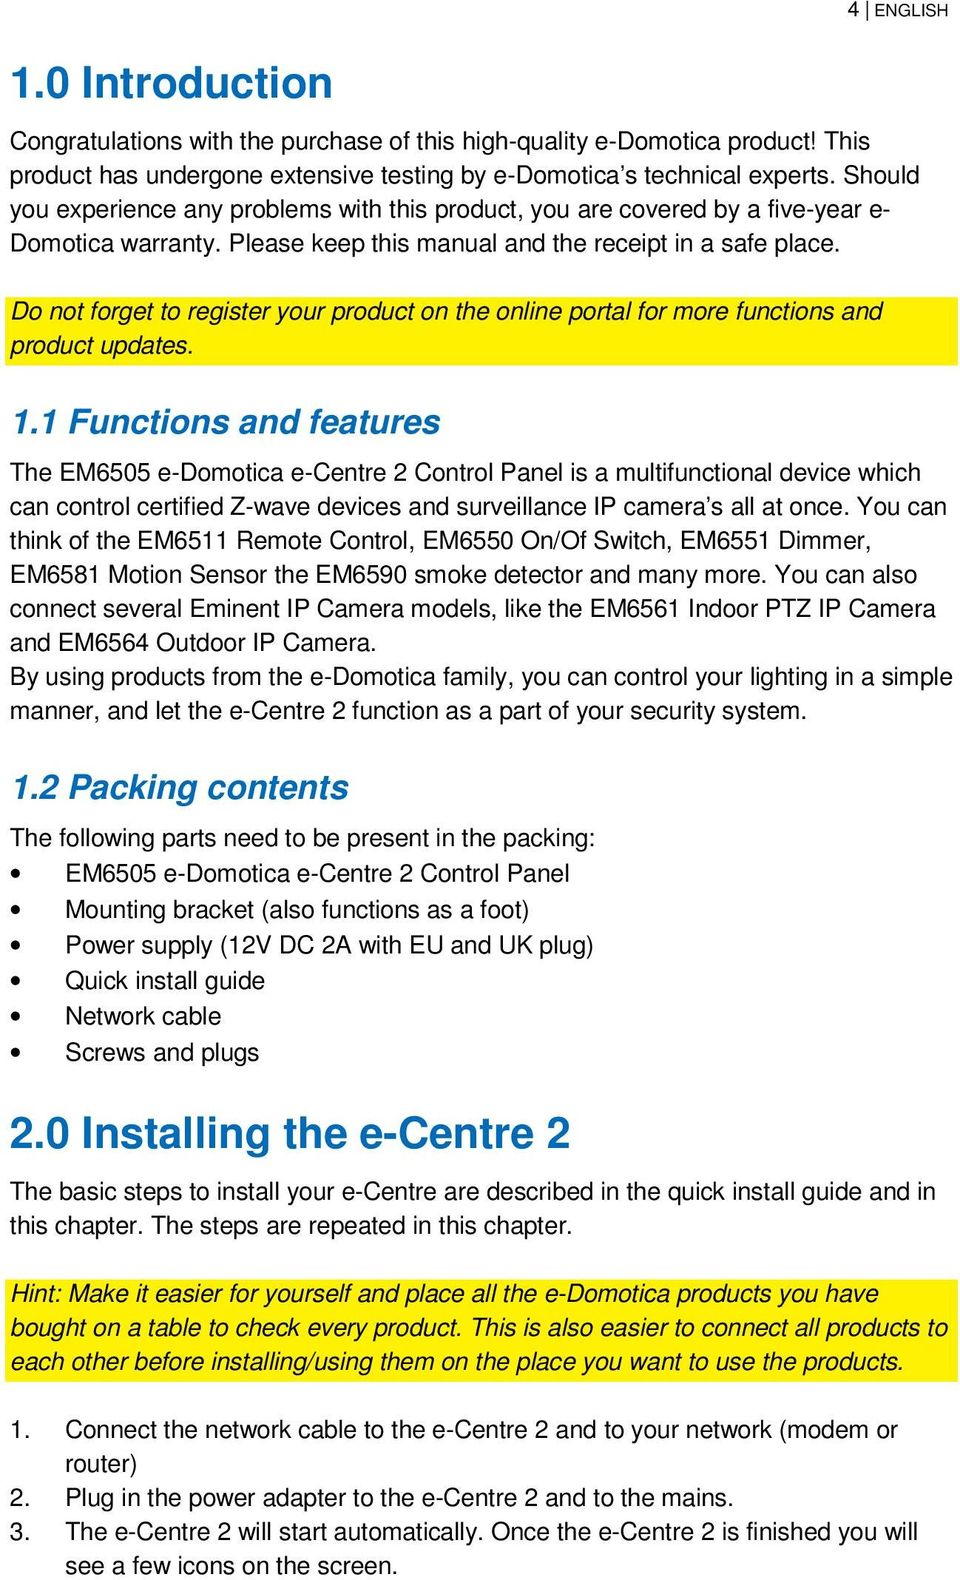 Do not forget to register your product on the online portal for more functions and product updates. 1.